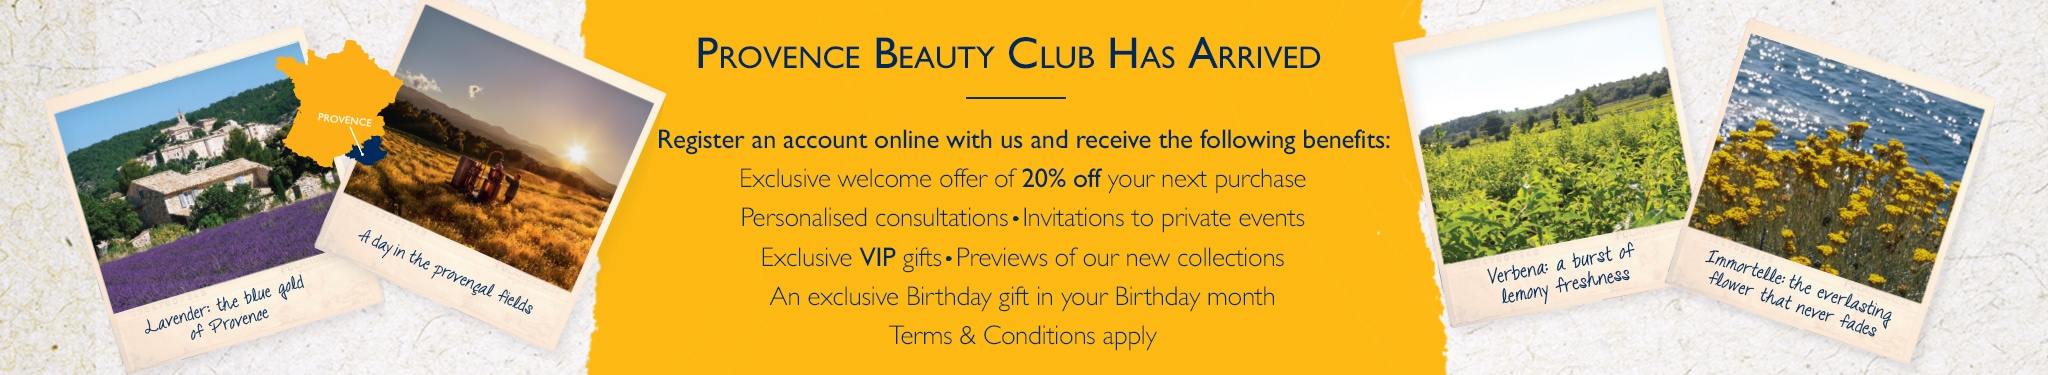 Provence Beauty Club